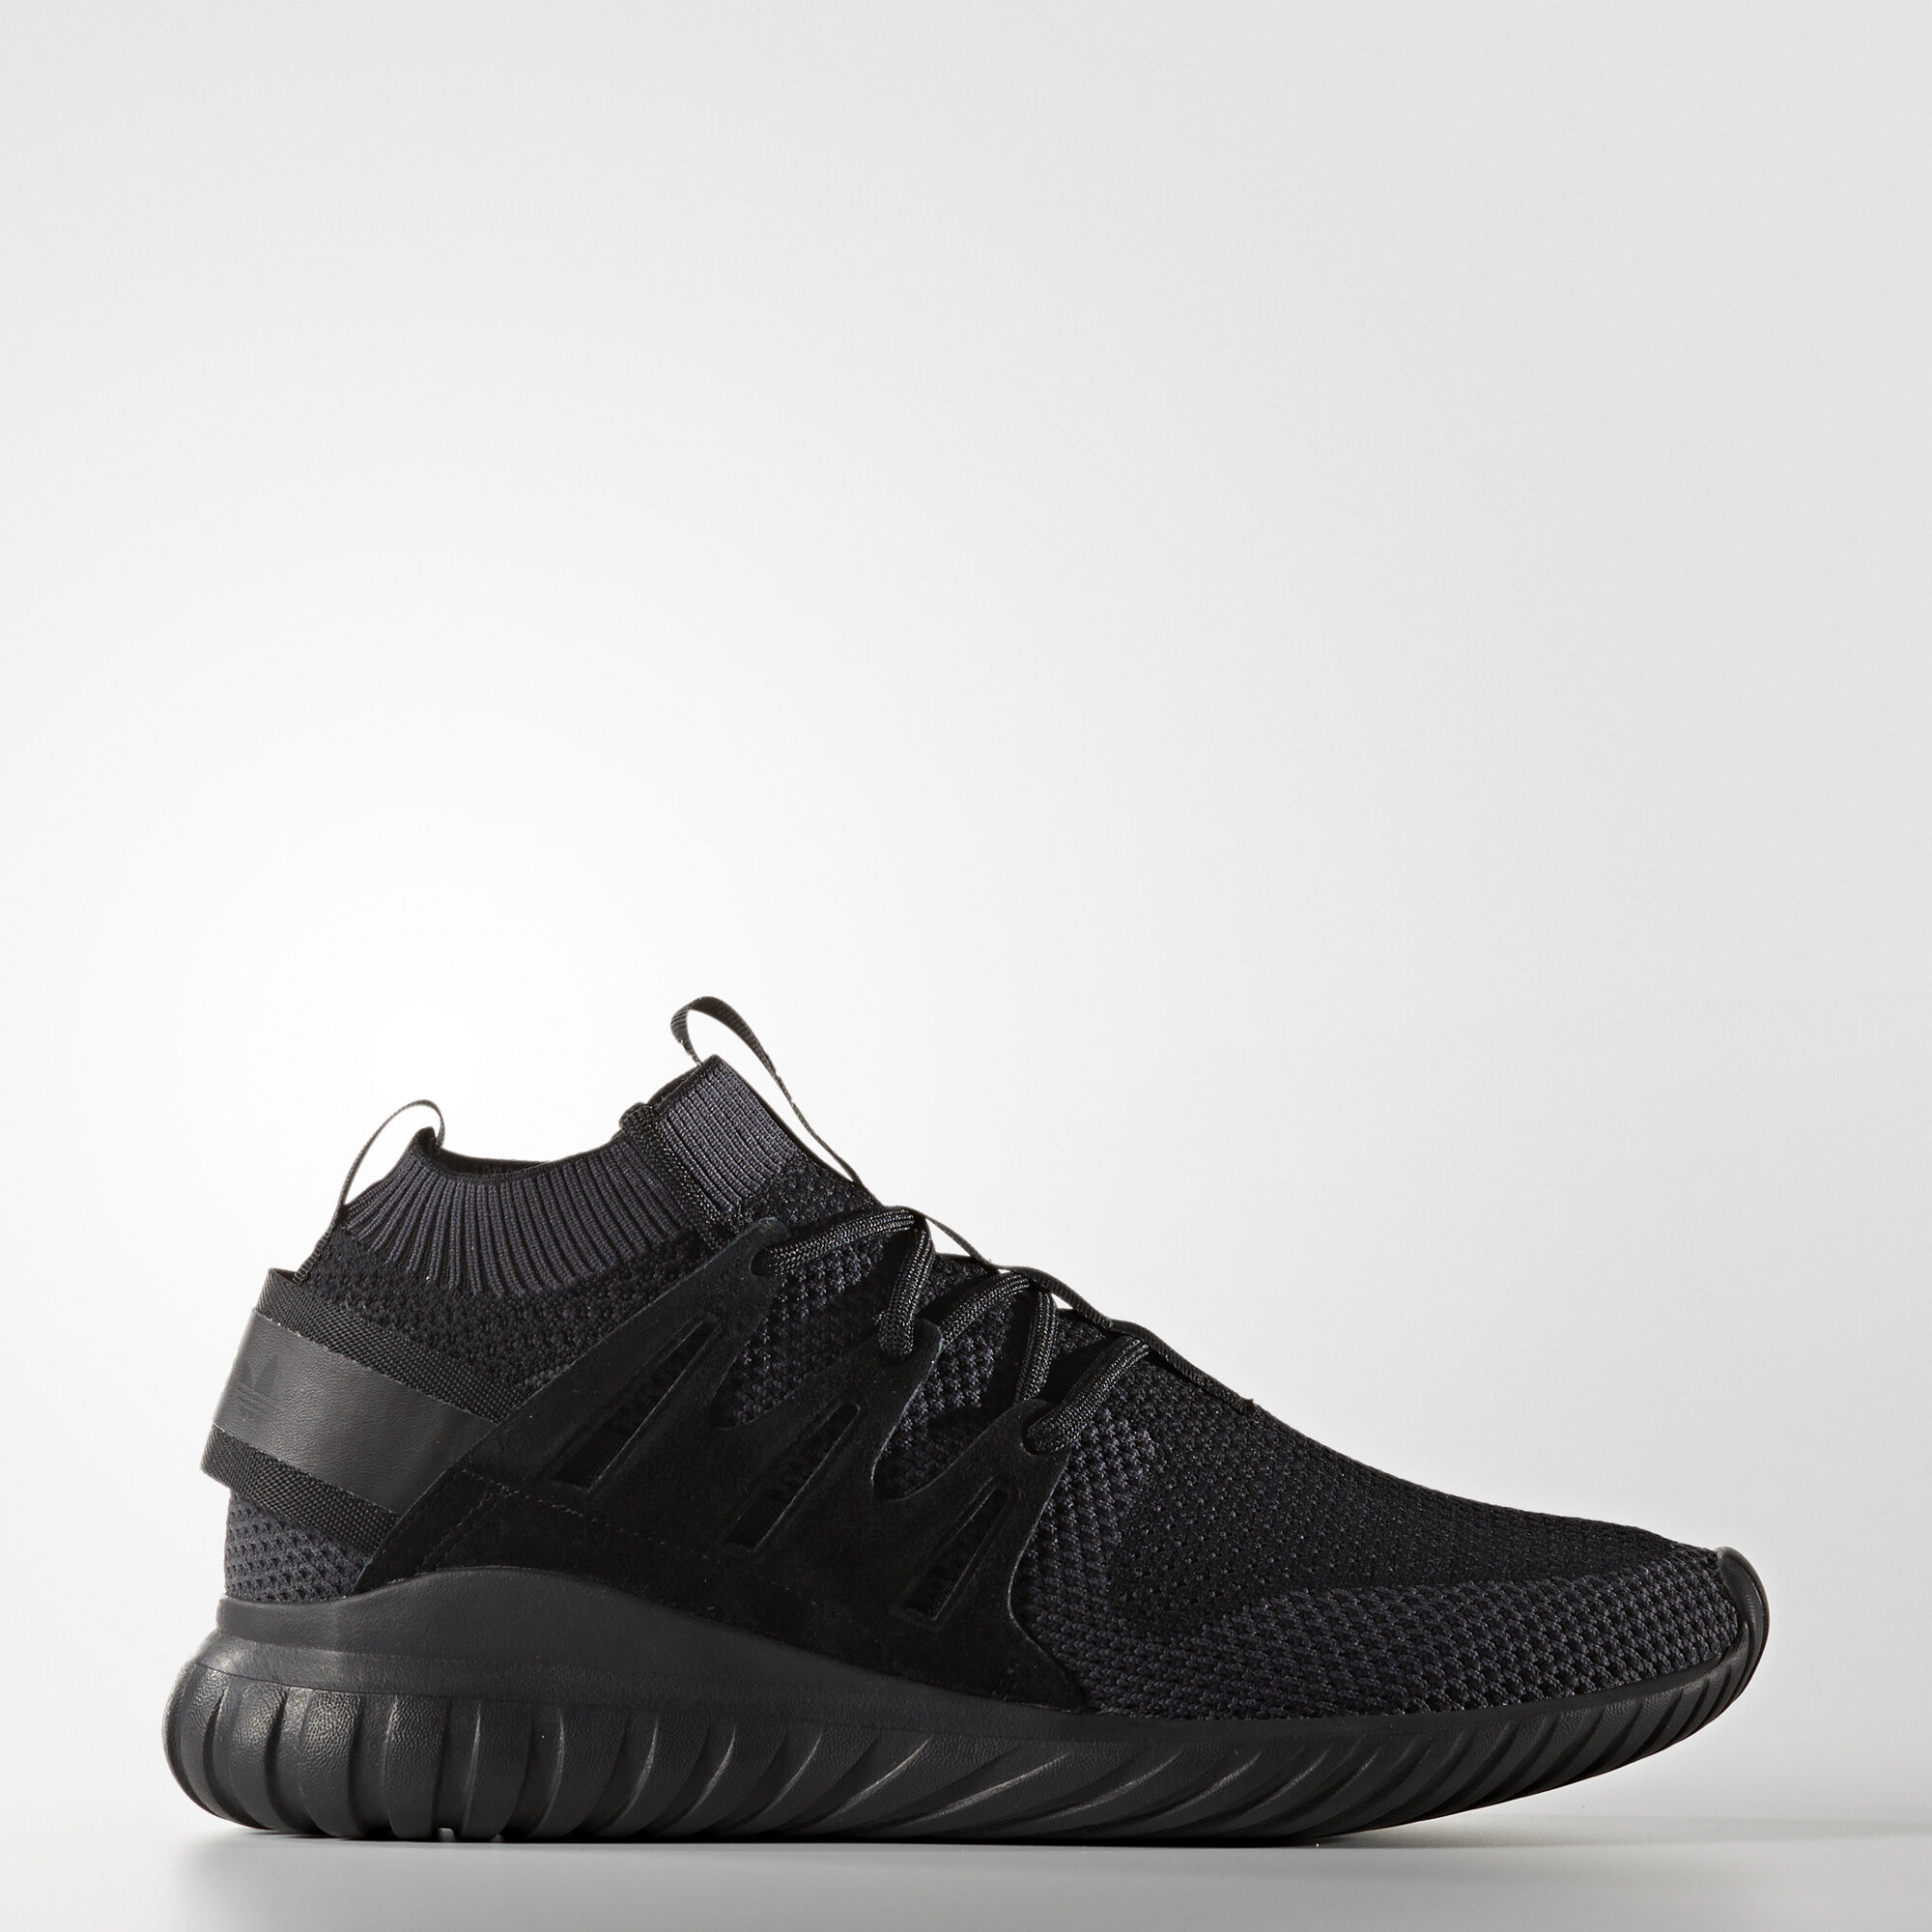 Adidas Tubular Black Woman